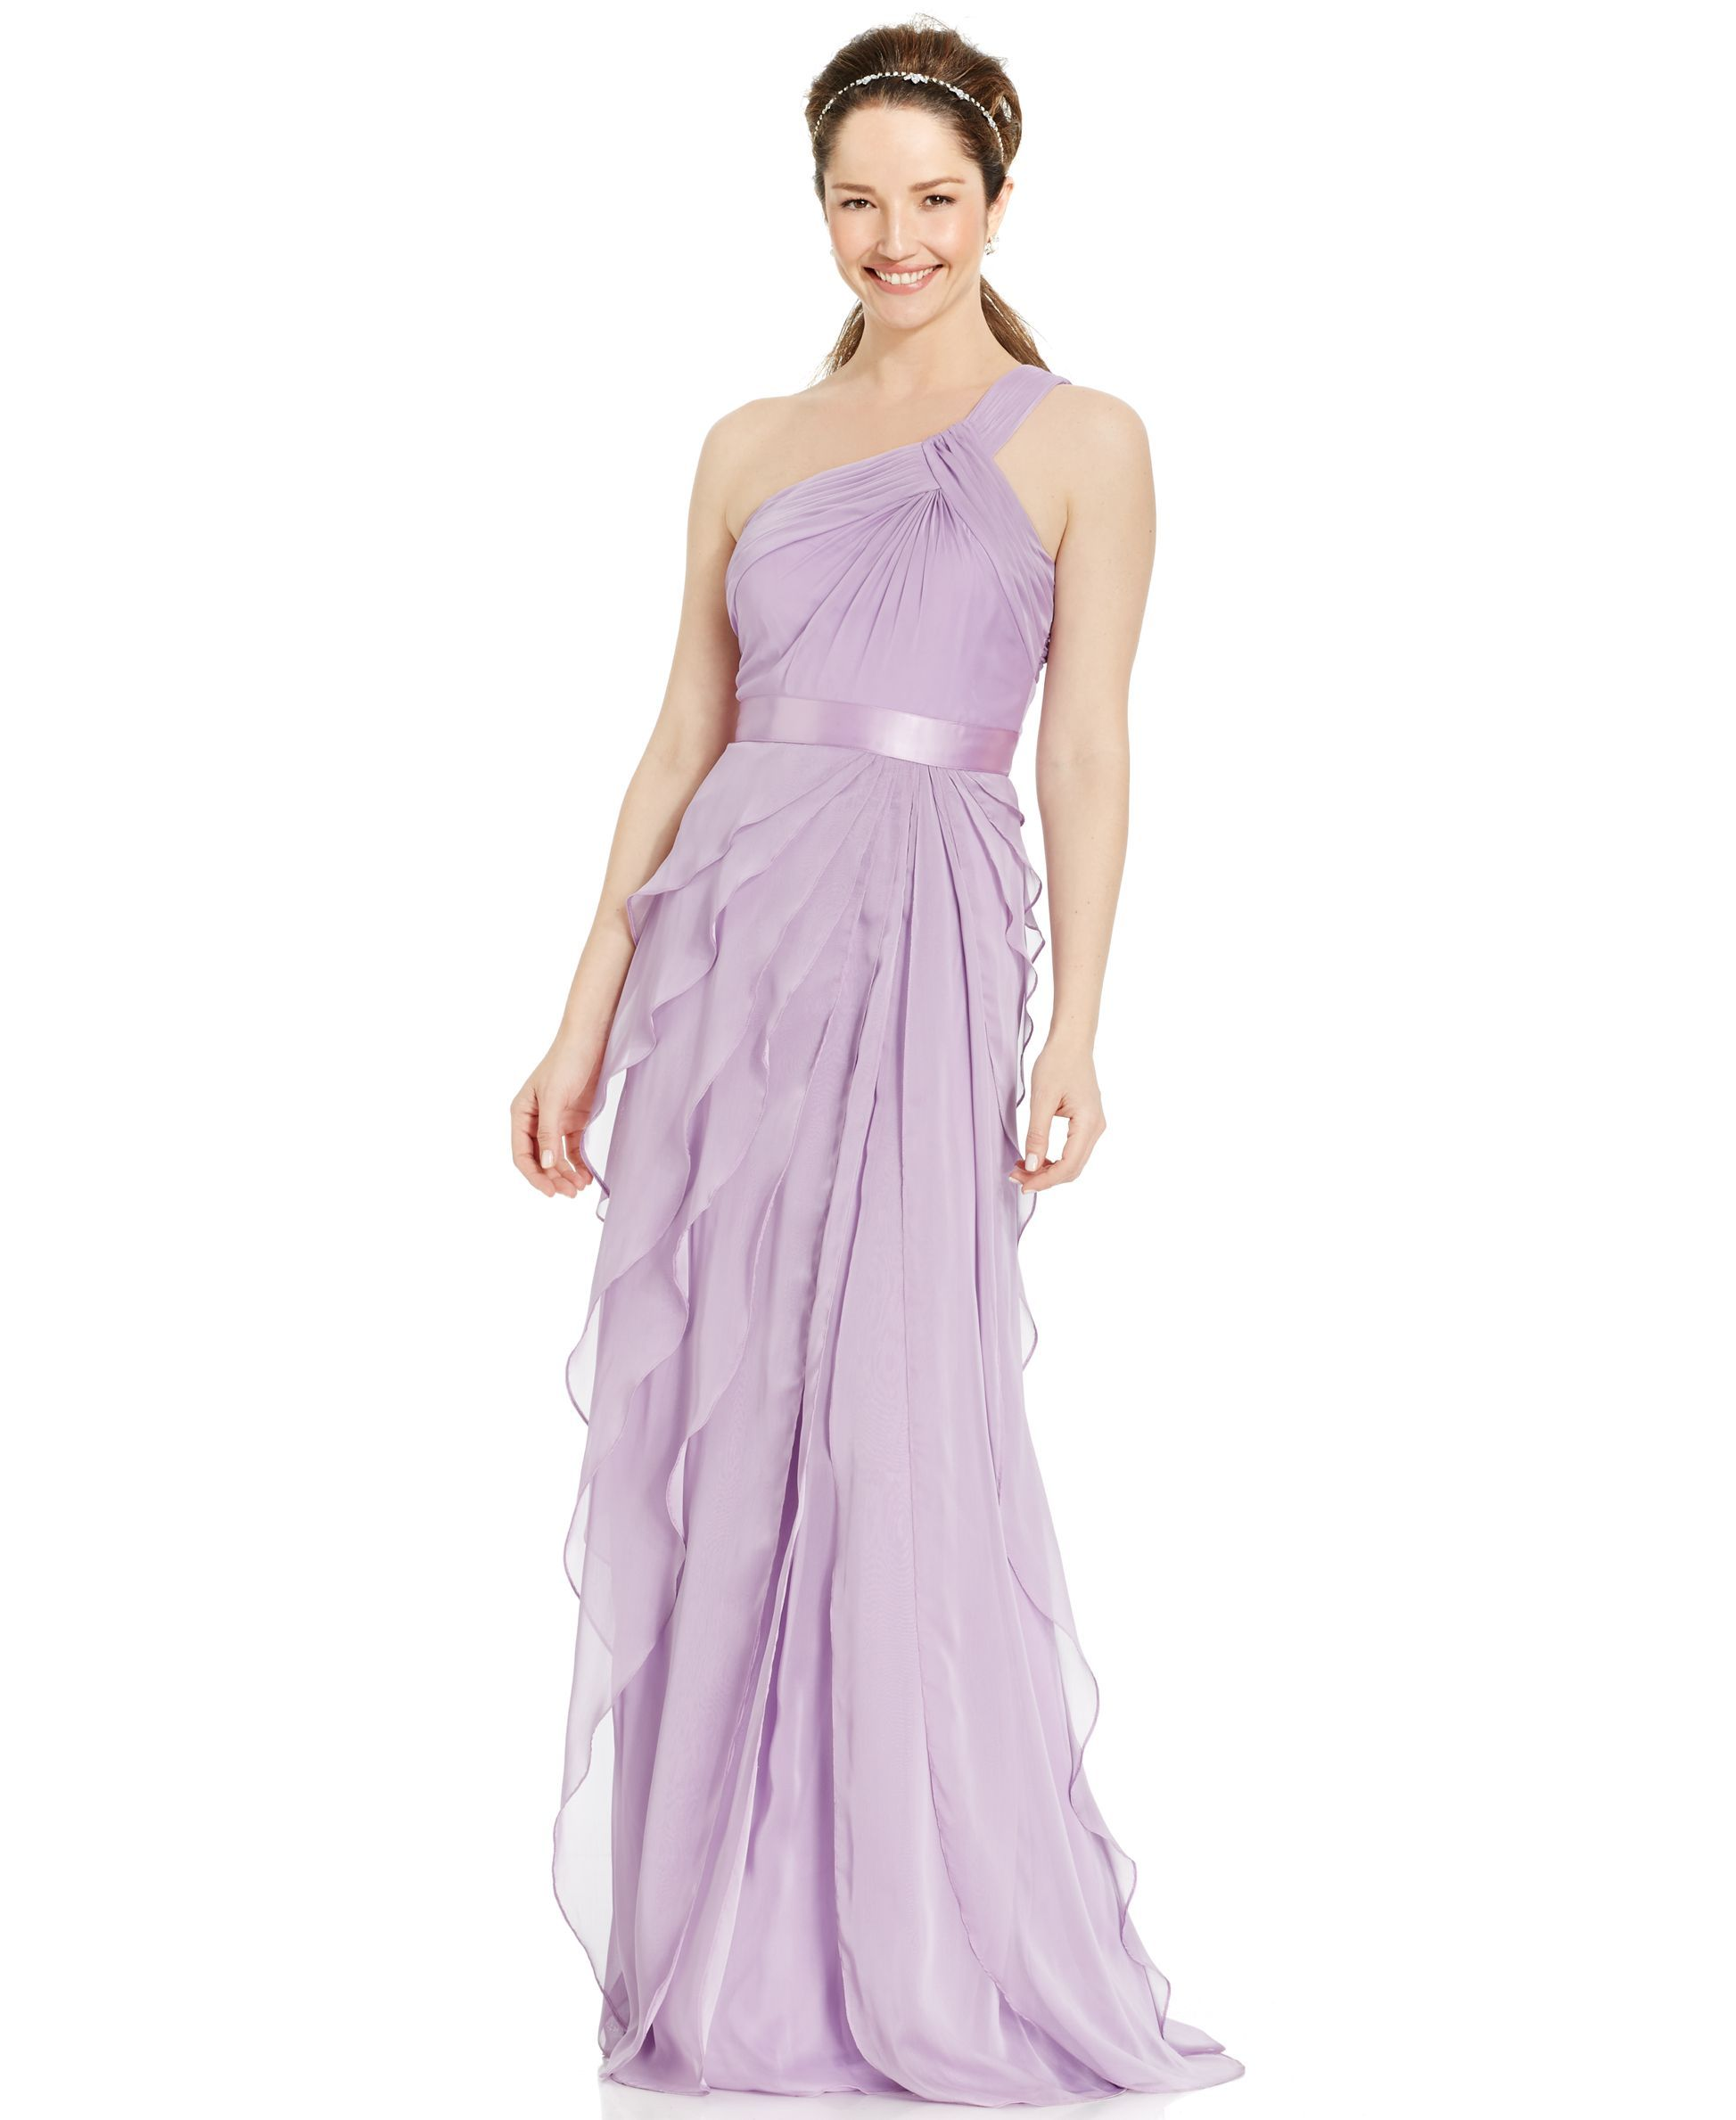 Adrianna Papell One-Shoulder Tiered Chiffon Gown | Chiffon gown ...